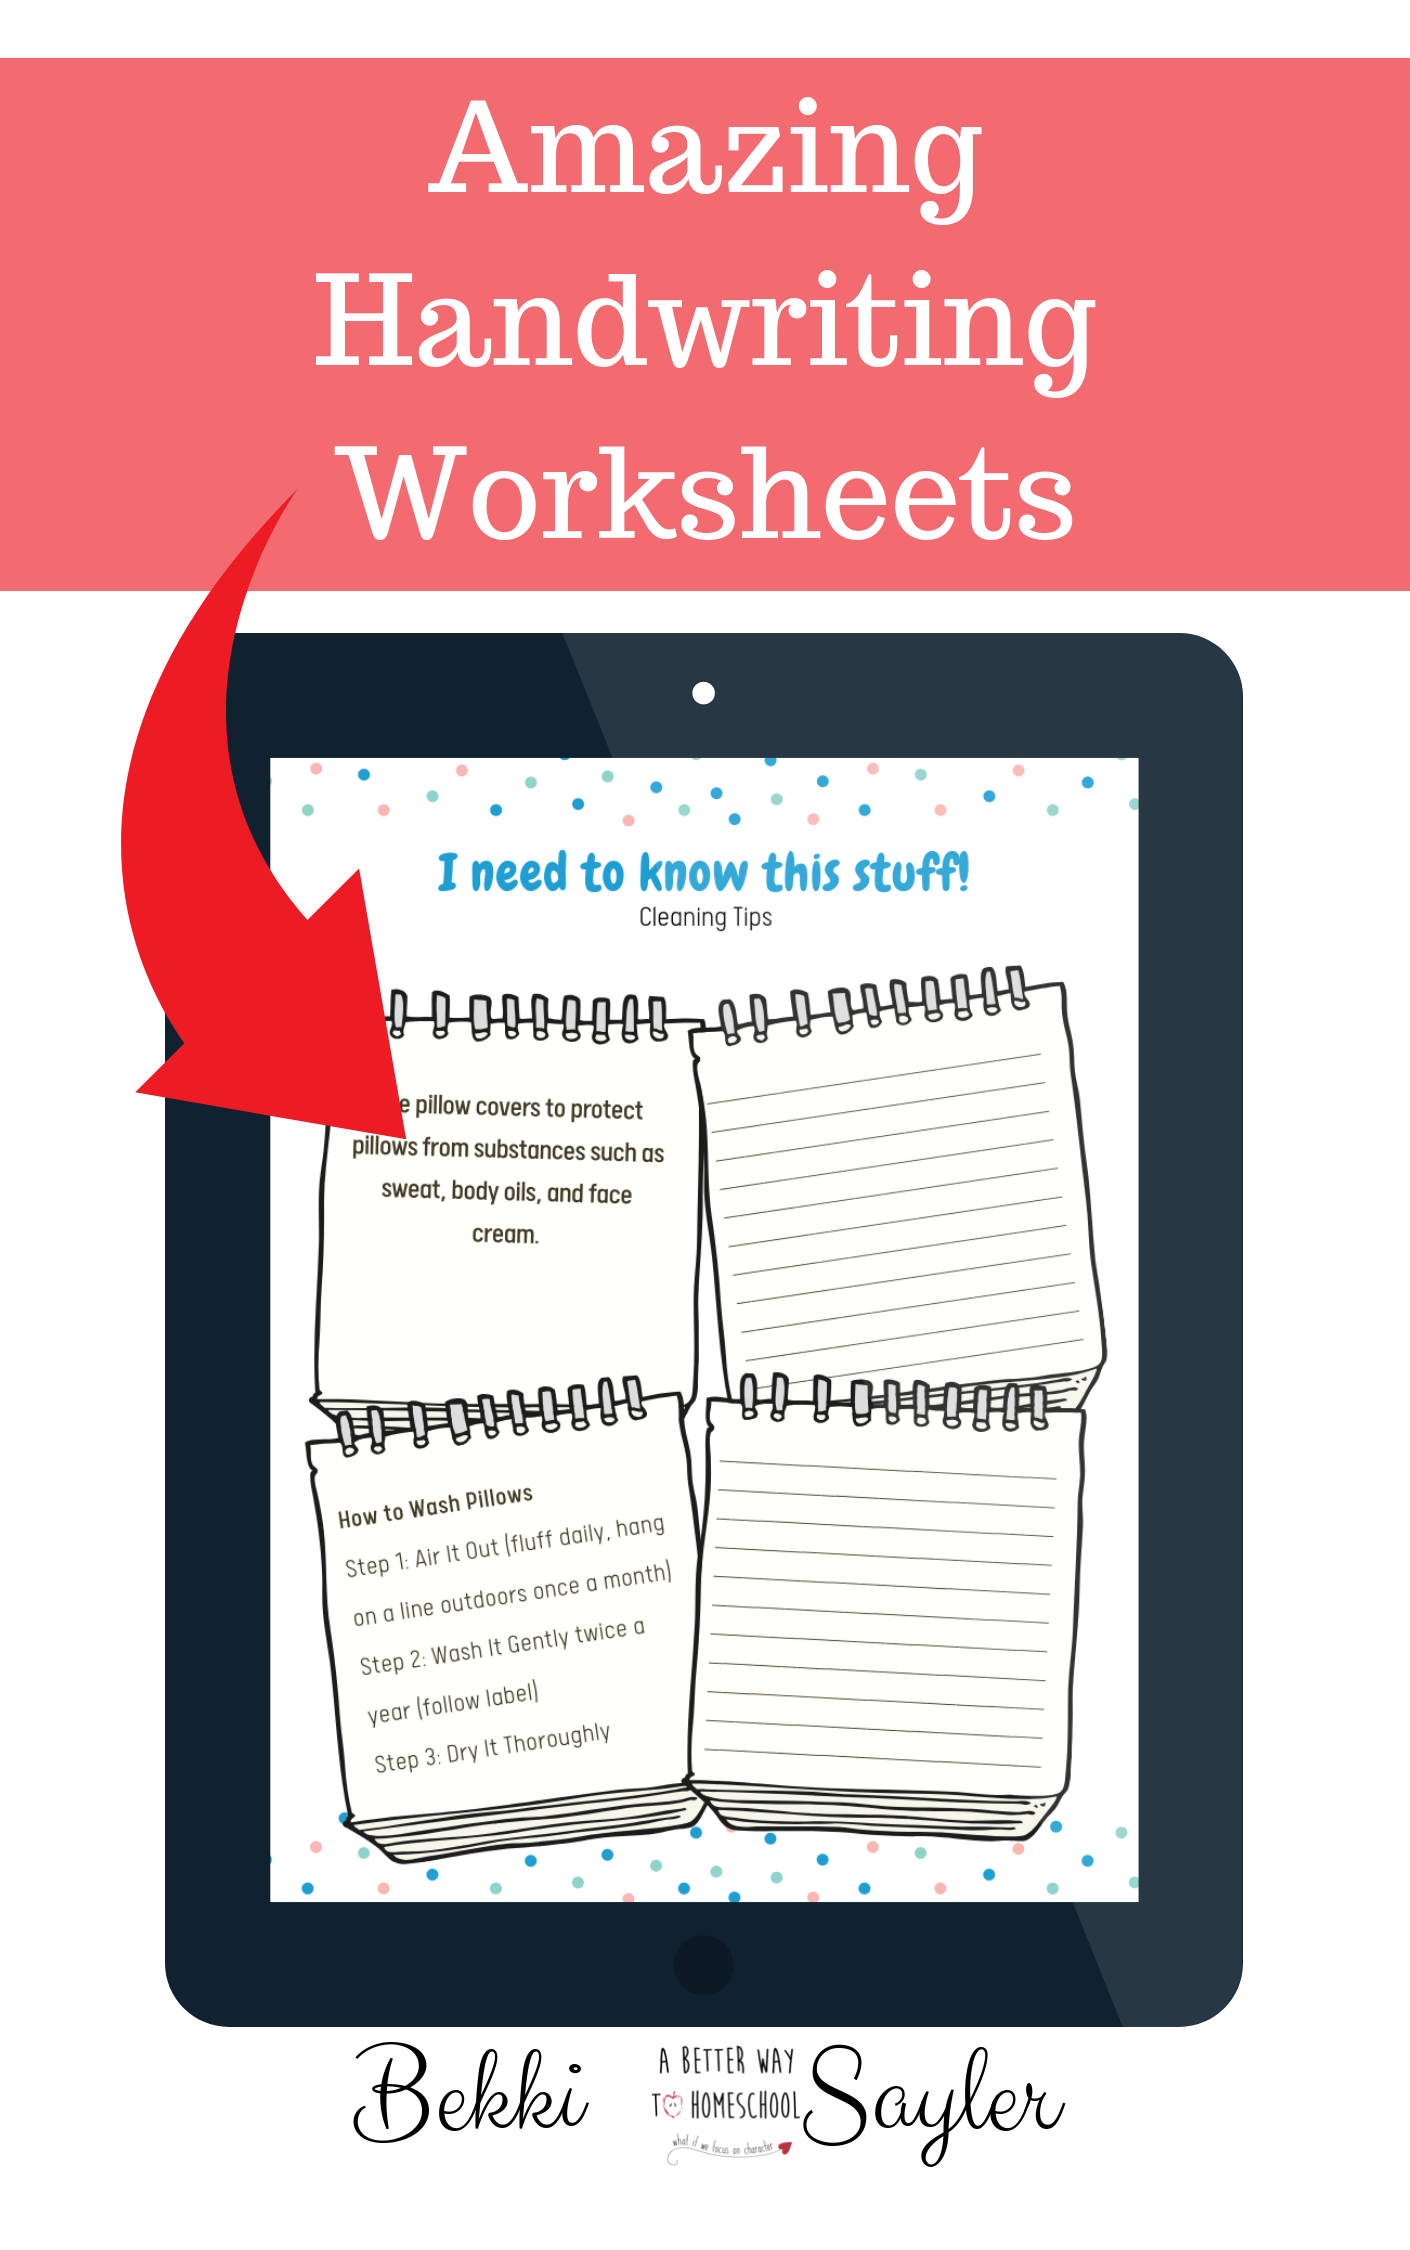 These Amazing Handwriting Worksheets Use Life Skills